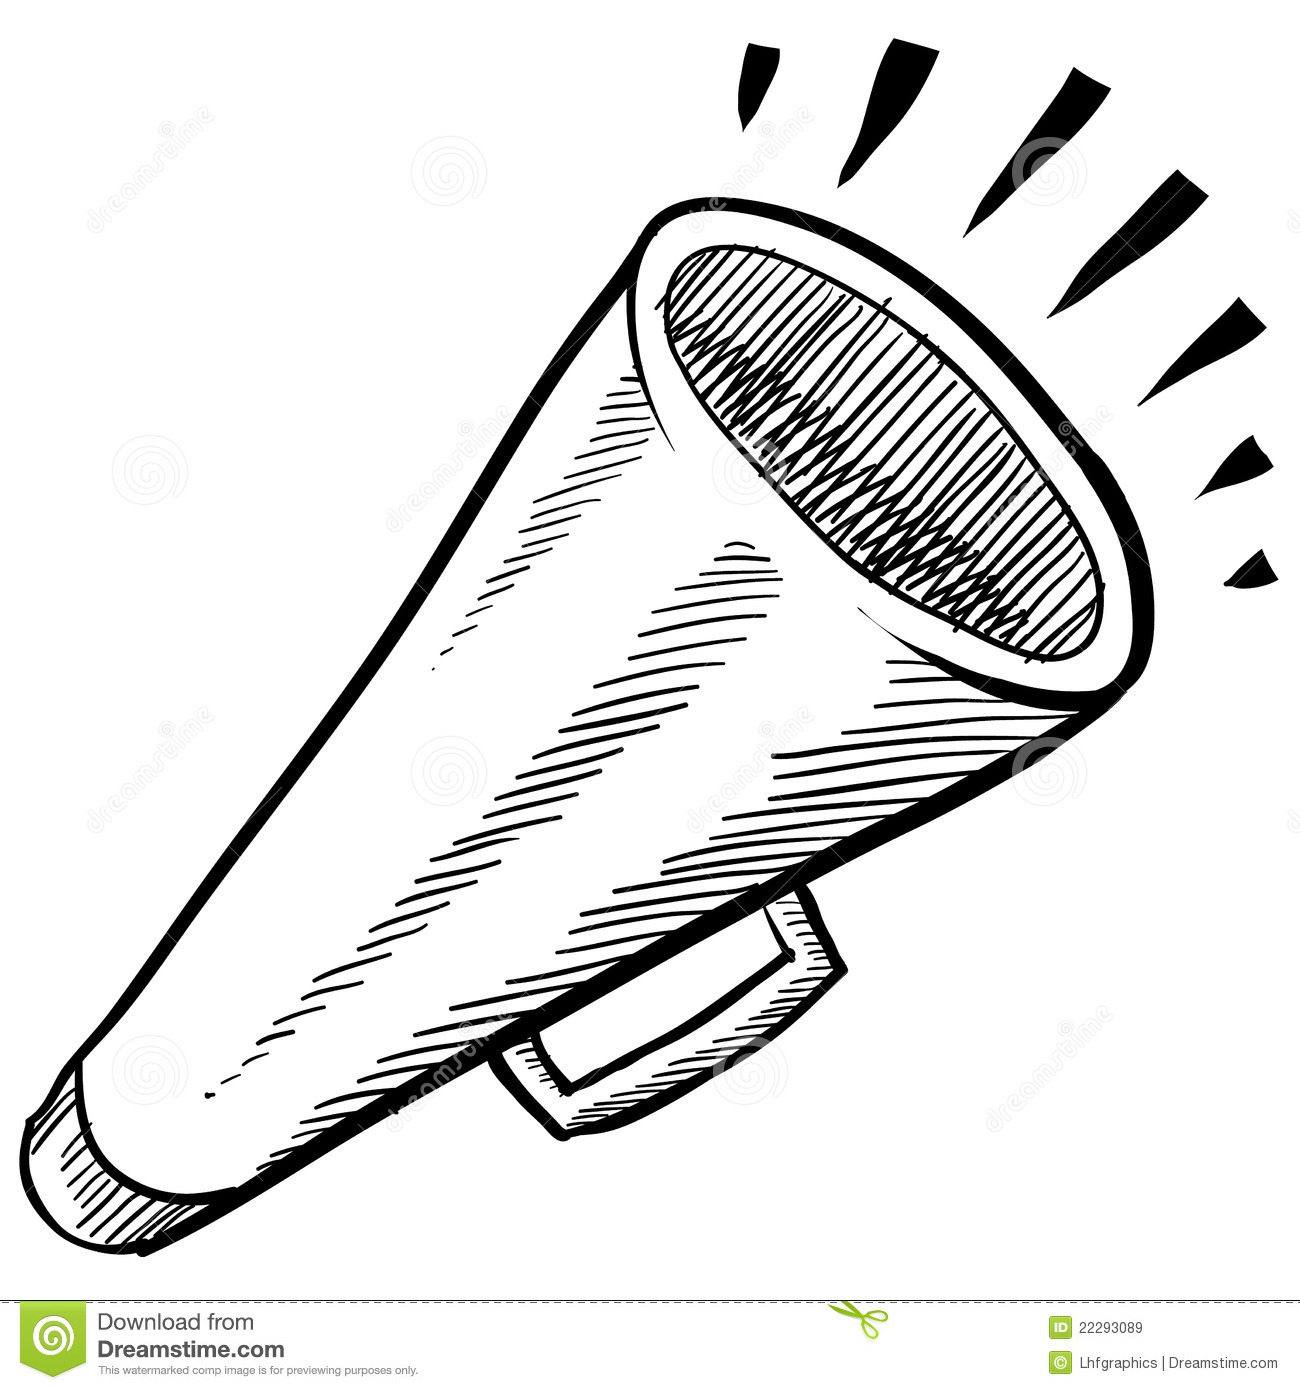 Megaphone Or Announcement Illustration Royalty Free Stock